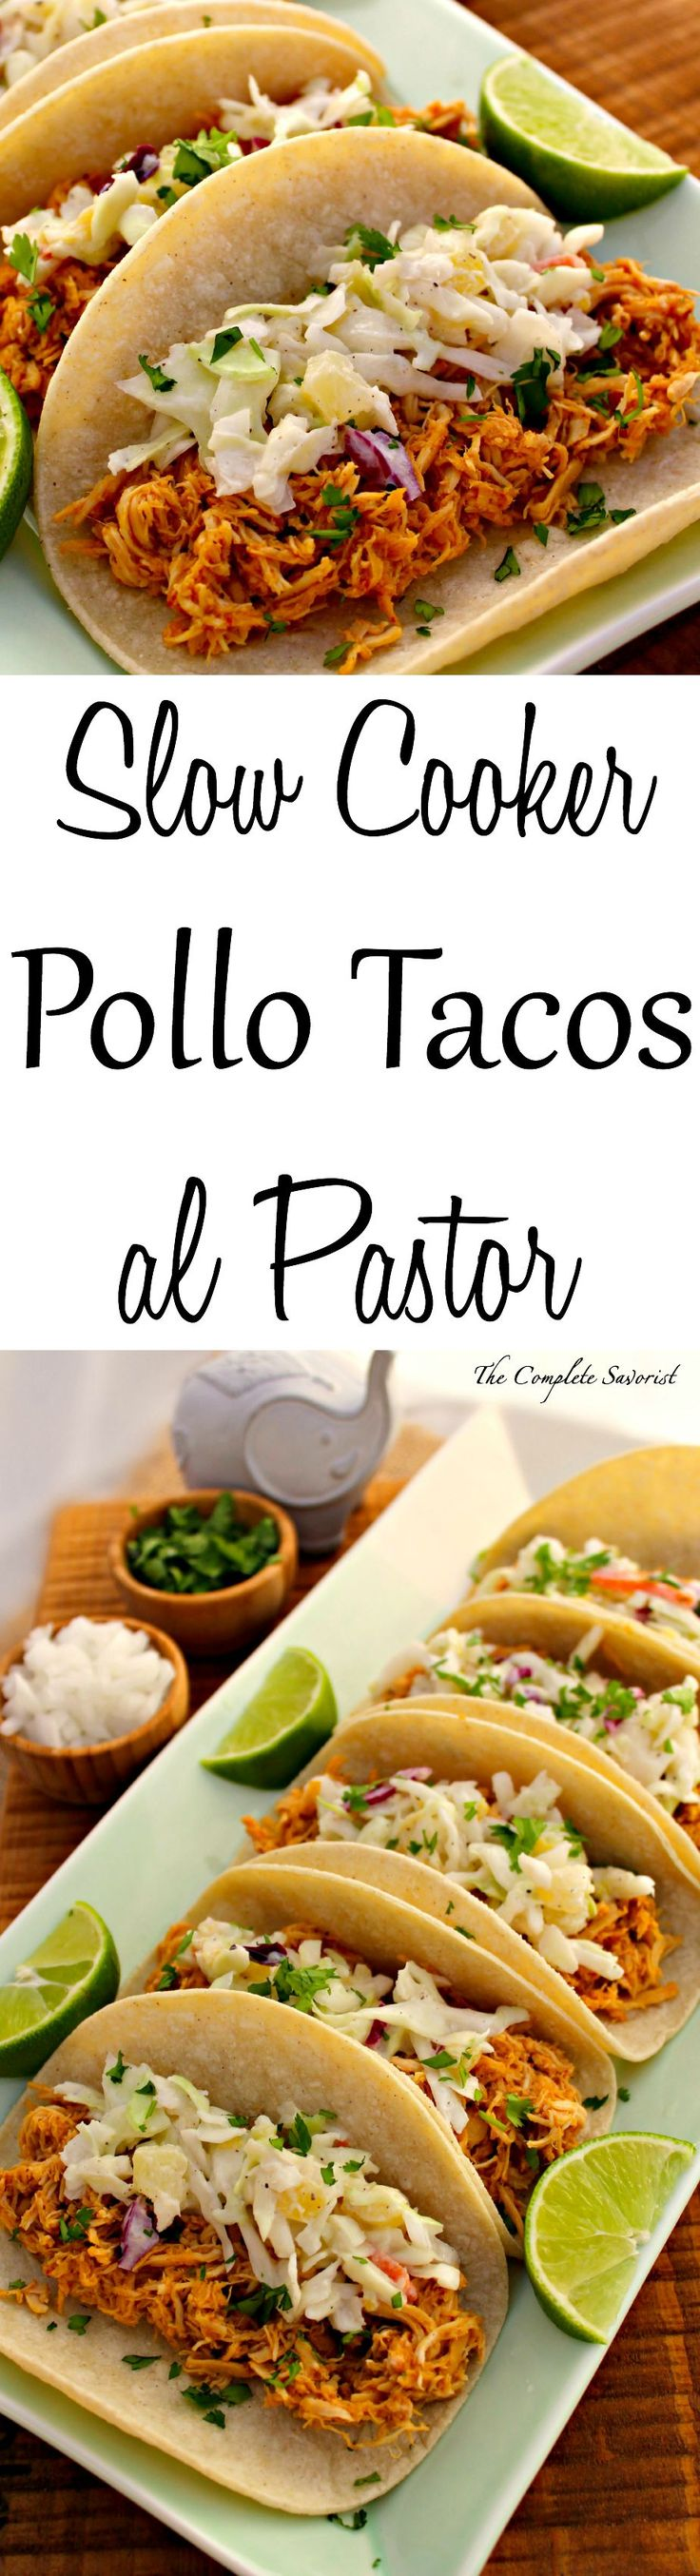 Slow Cooker Pollo Tacos al Pastor ~ Slow cooked chicken in the traditional al pastor flavors, shredded and put in a taco, topped with pineapple coleslaw. ~ The Complete Savorist #SwansonSummer #ad